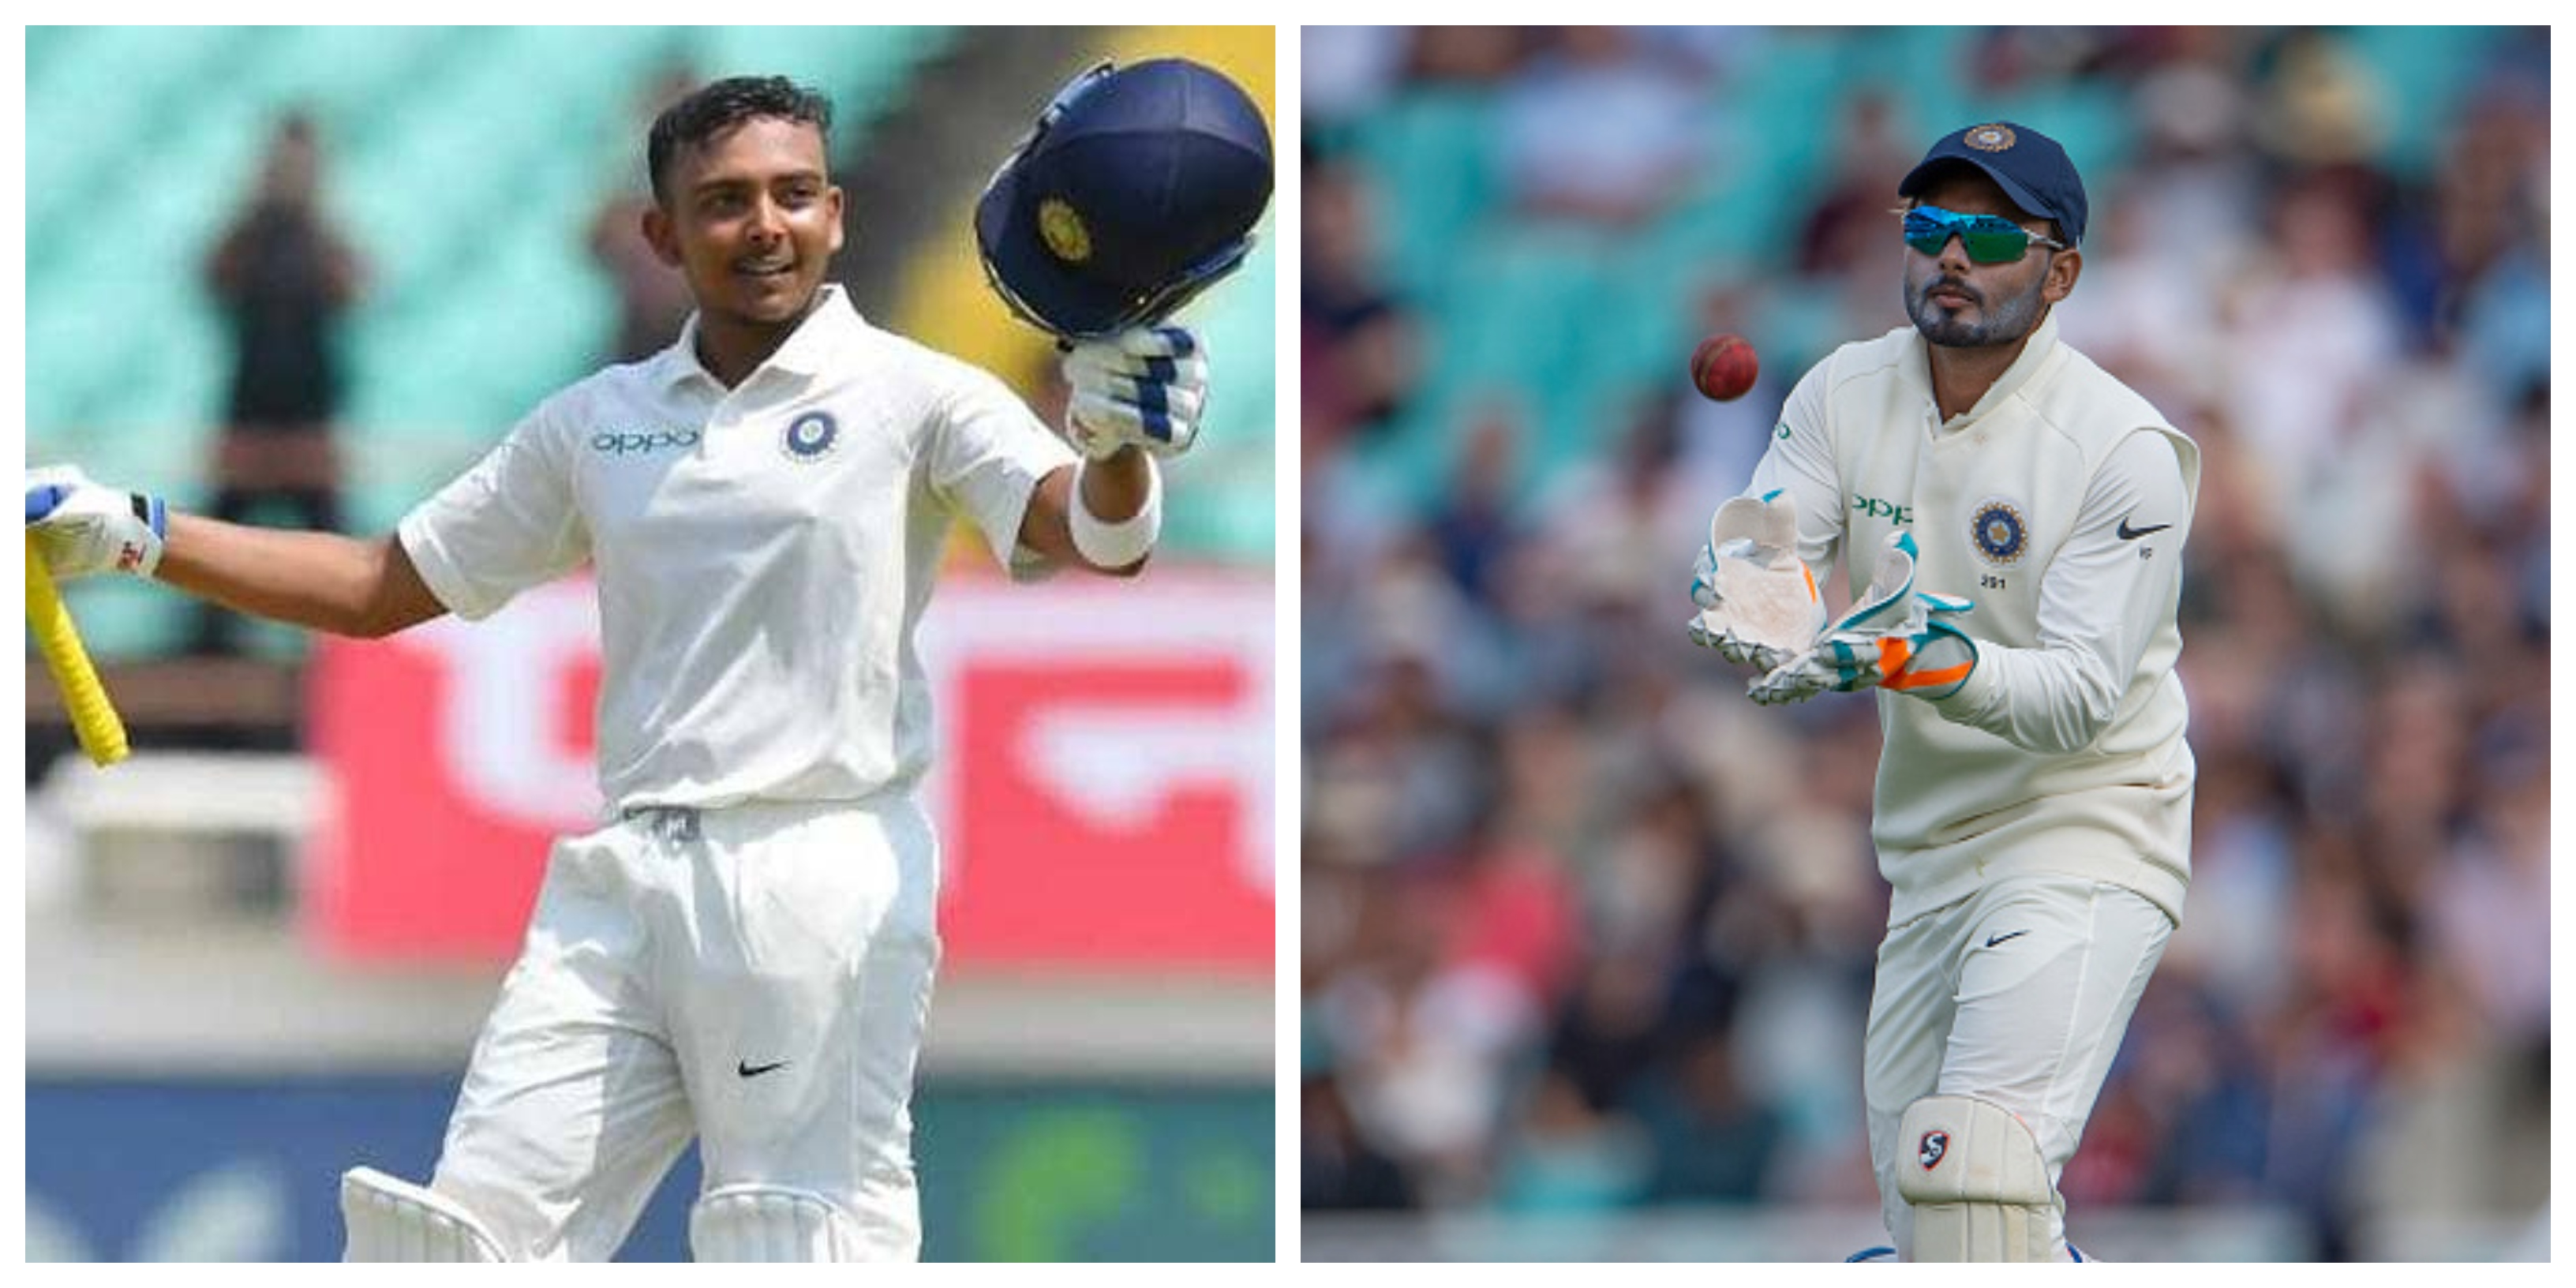 Prithvi Shaw and Pant performed brilliantly against West Indies but India do need their back-ups for Australia